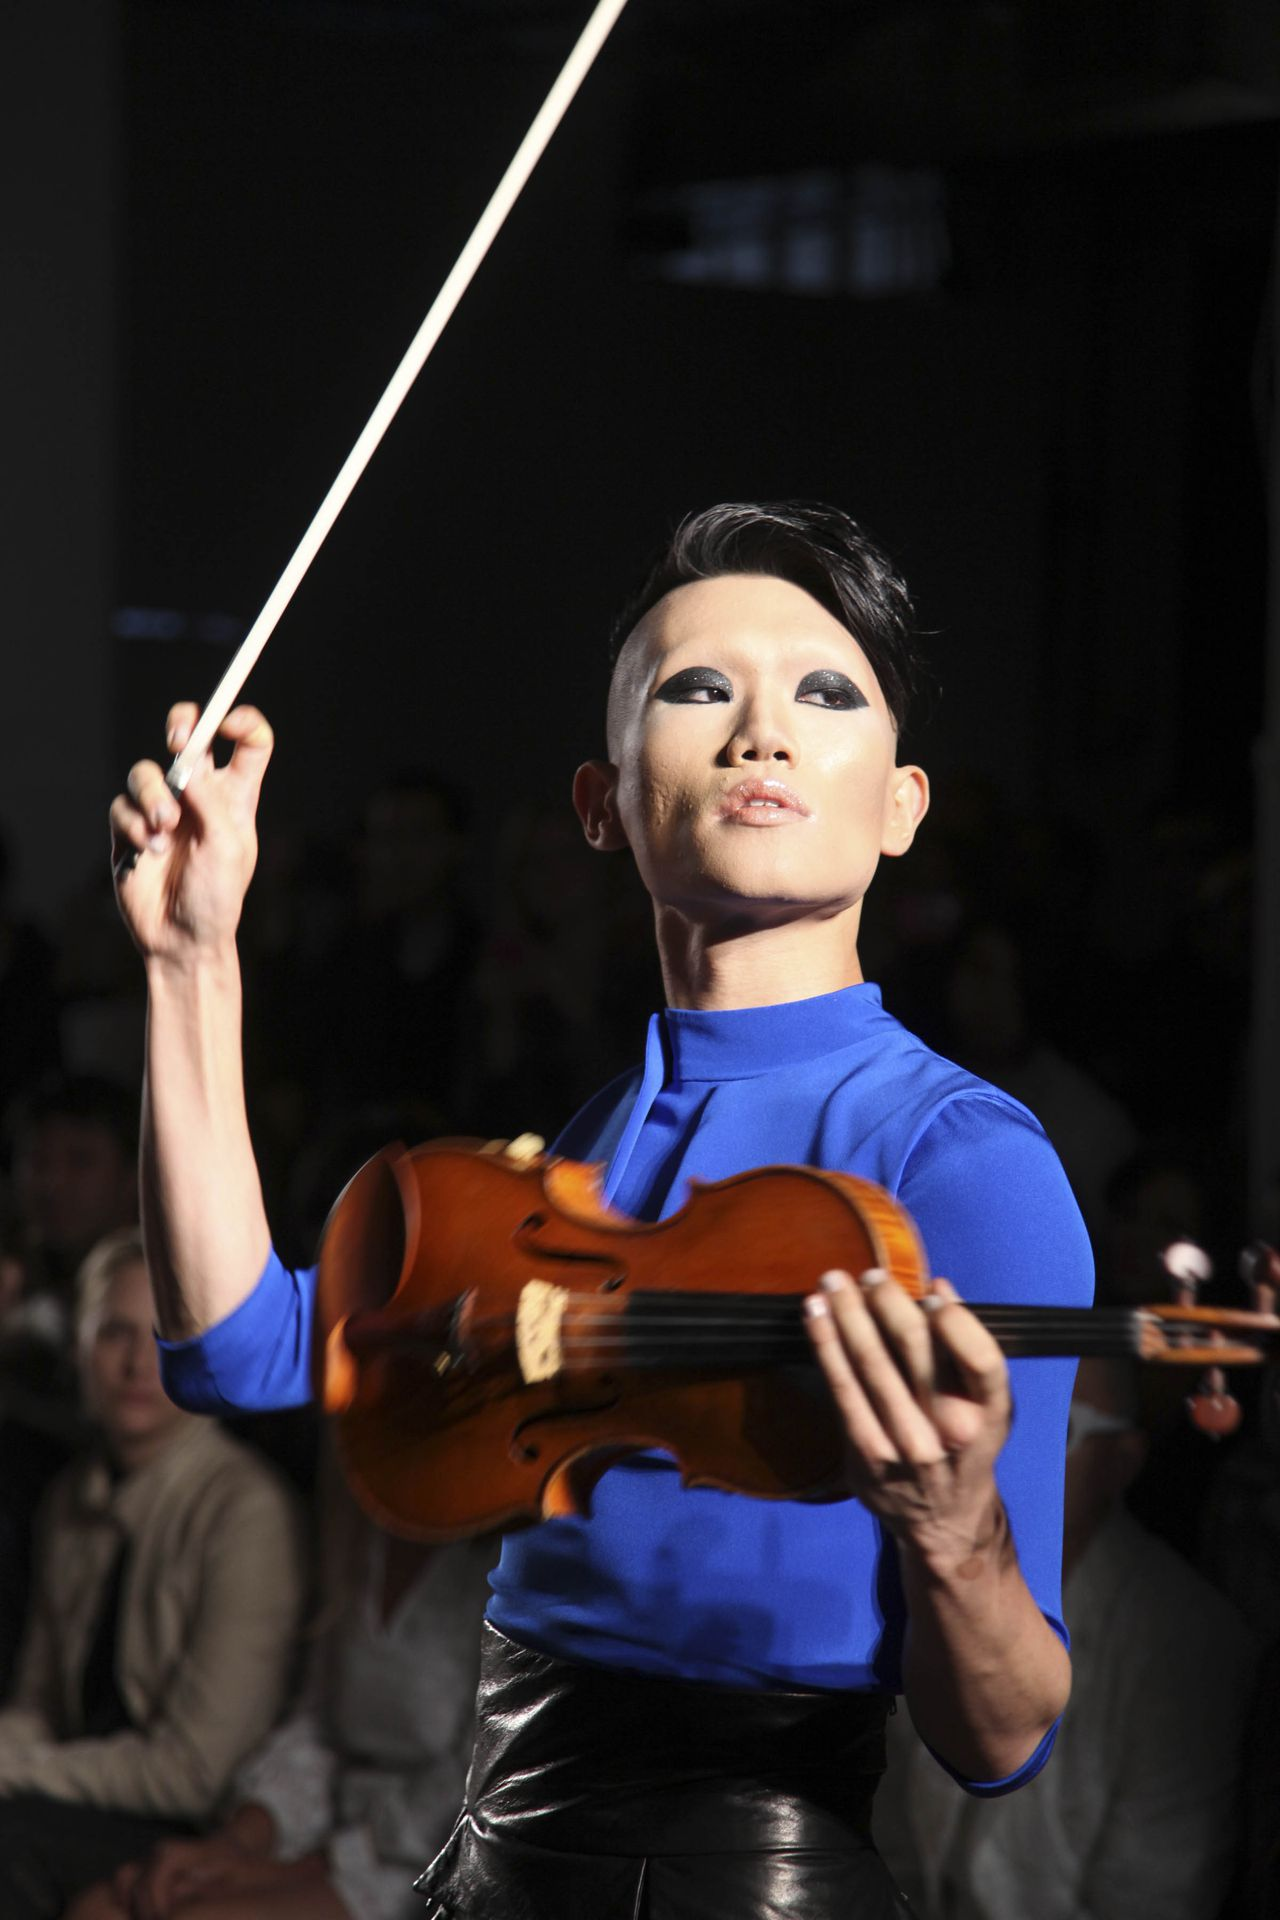 This Sunday, Sept. 12, 2010 photo released by Will Ragozzino/PatrickMcMullan.com shows violinst Hahn-Bin performing at the presentation of the Elise Overland spring 2011 collection during Fashion Week in New York. (AP Photo/PatrickMcMullan.com, Will Ragozzino) NO SALES, EDITORIAL USE ONLY